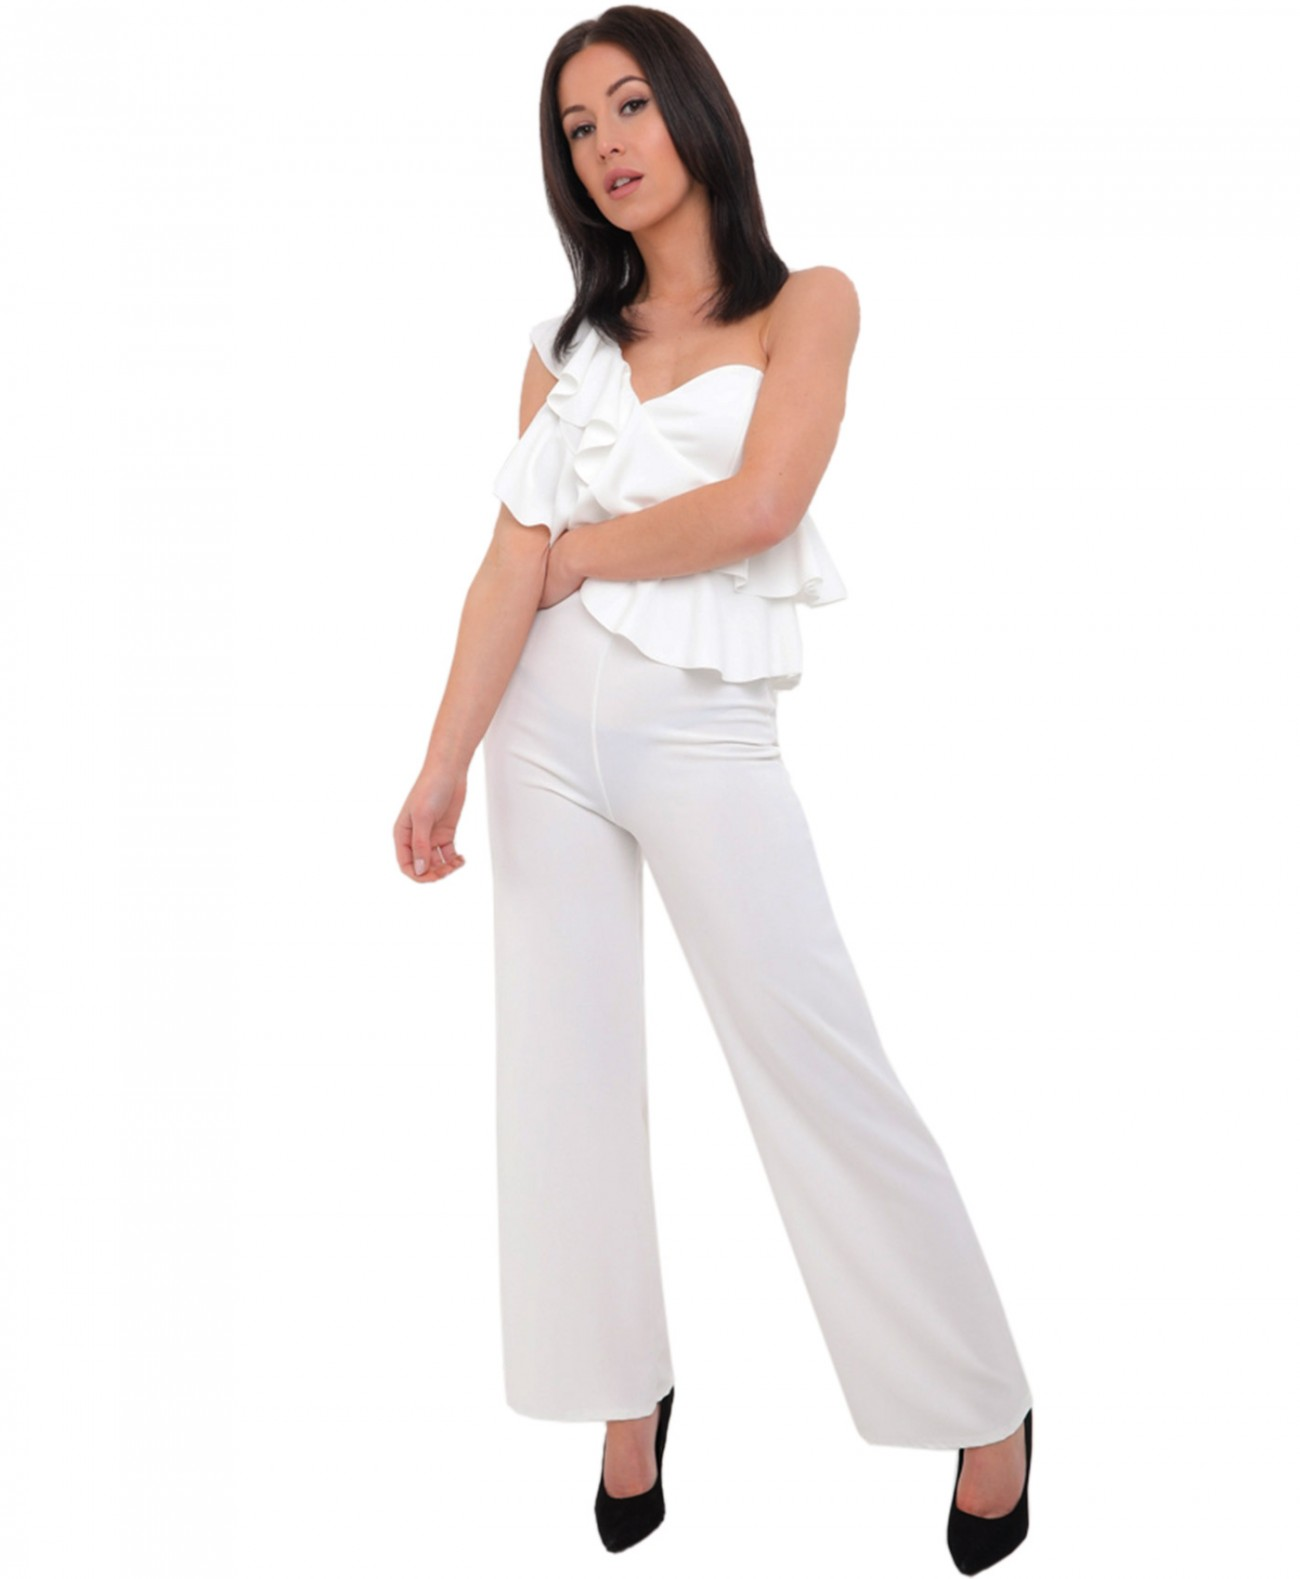 5ccc9f748eb White-One-Shoulder-Frill-Jumpsuit-2